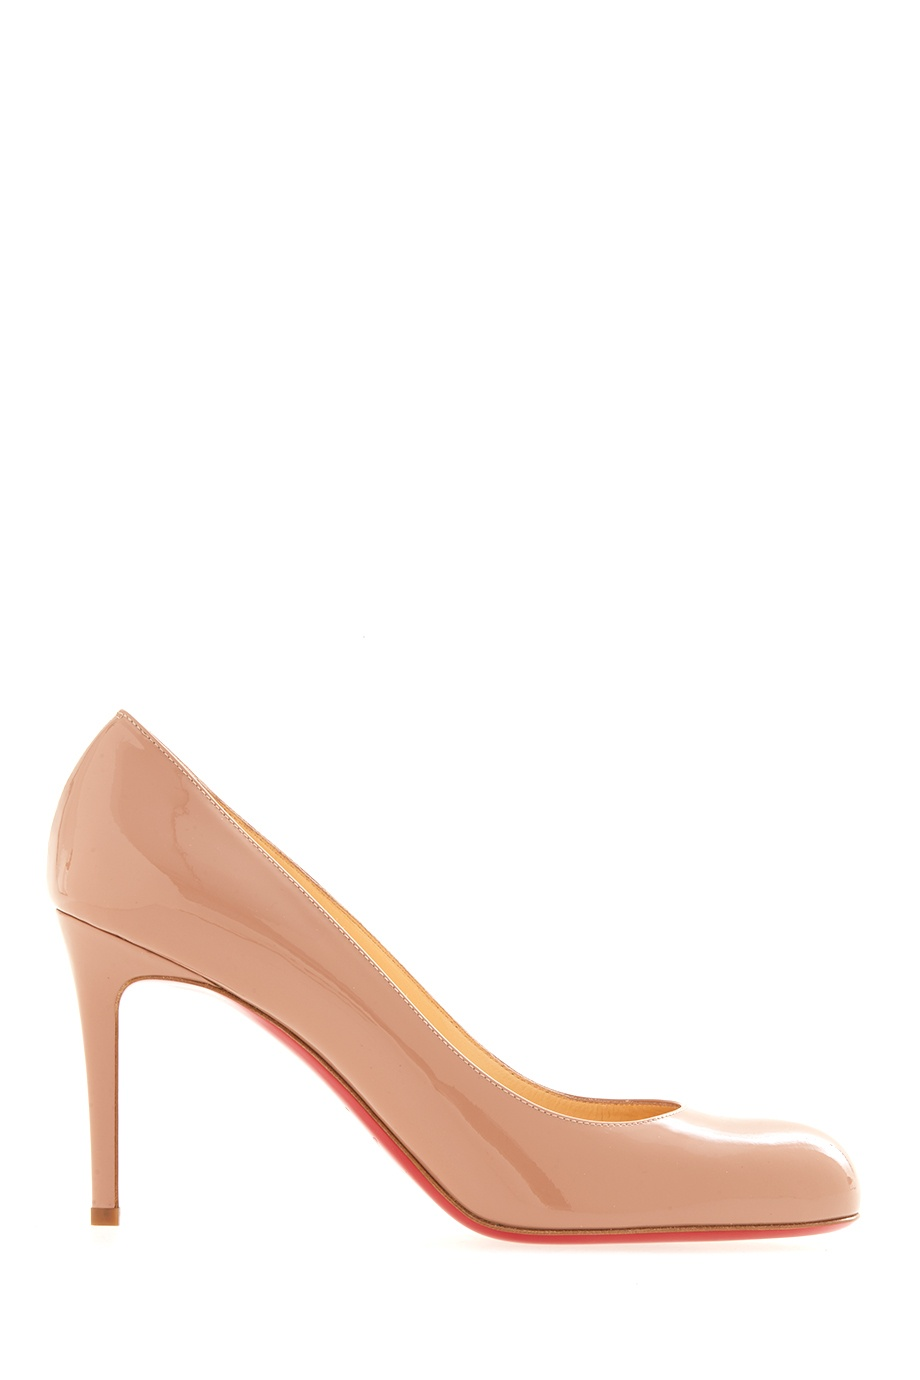 Туфли Simple pump 85 patent calf Christian Louboutin (фото)